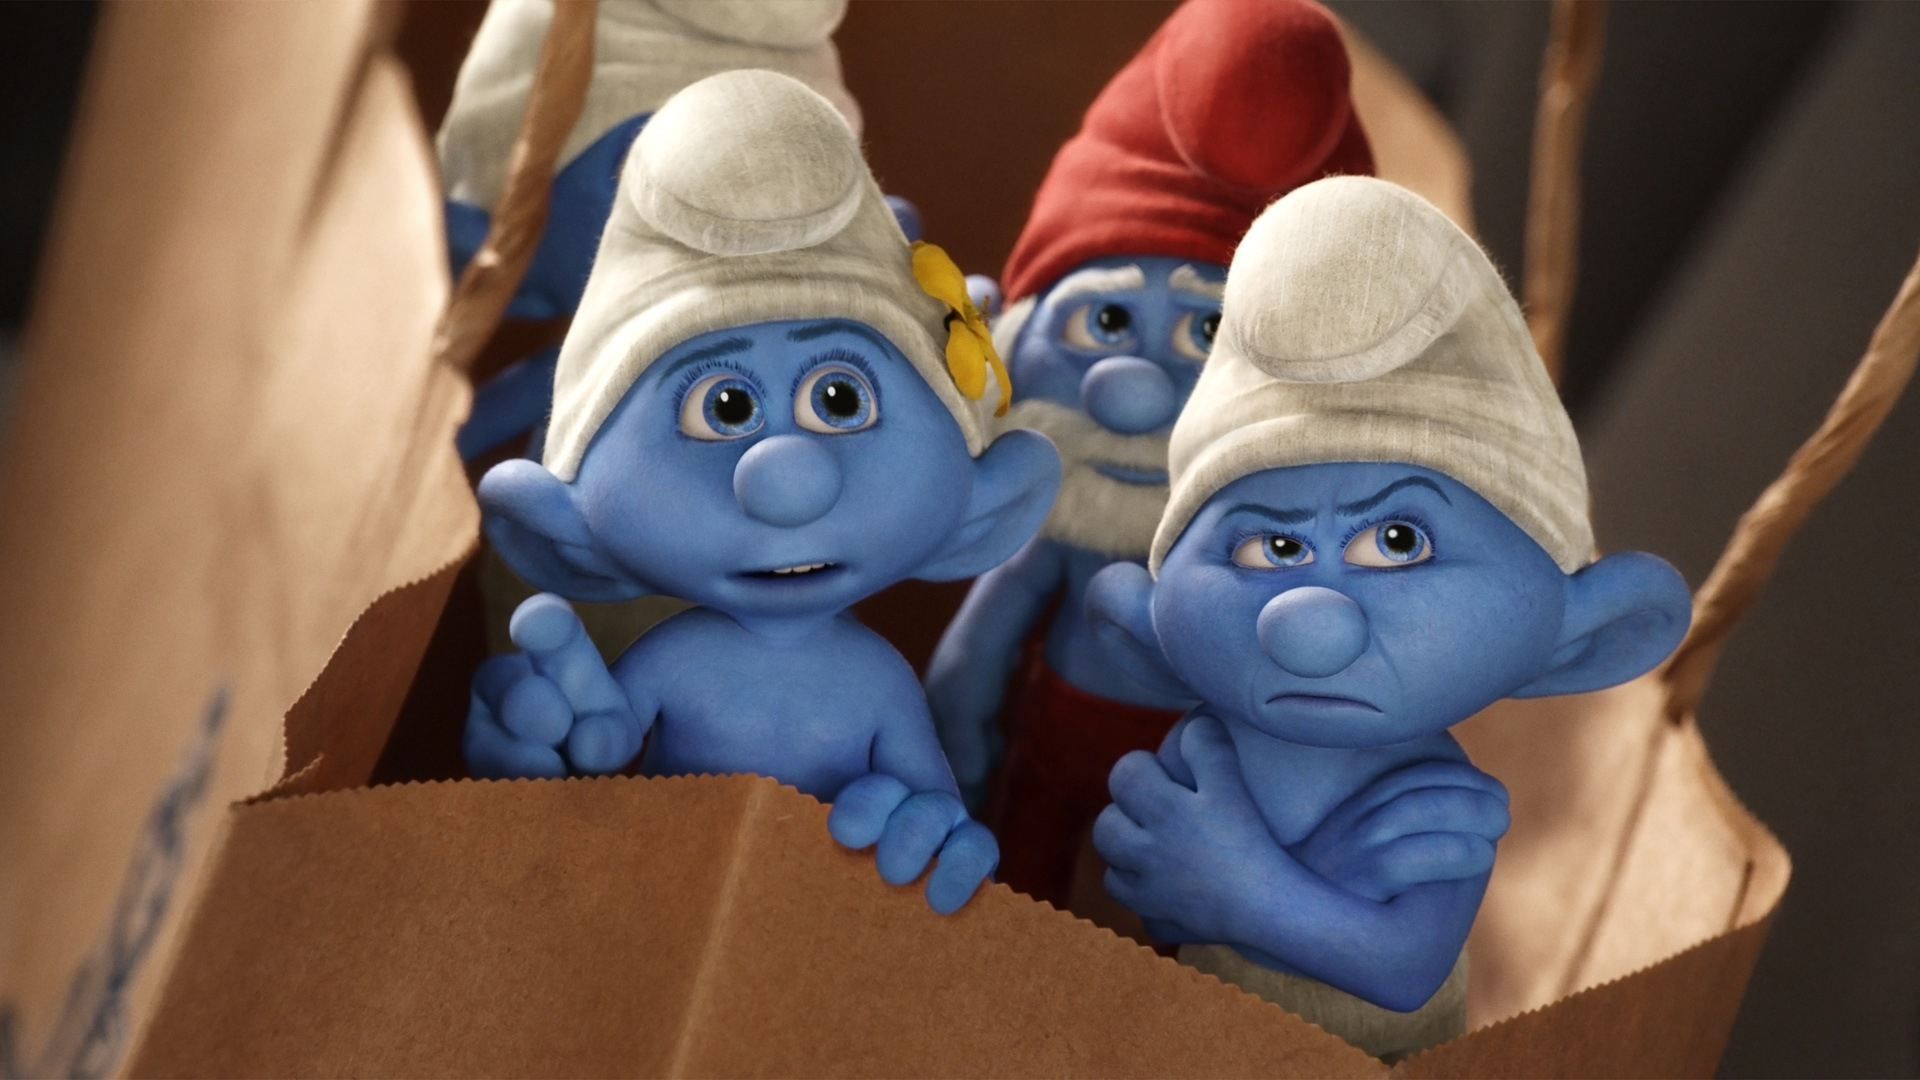 the smurfs 2 hd movie wallpapers #12 - 1920x1080 wallpaper download